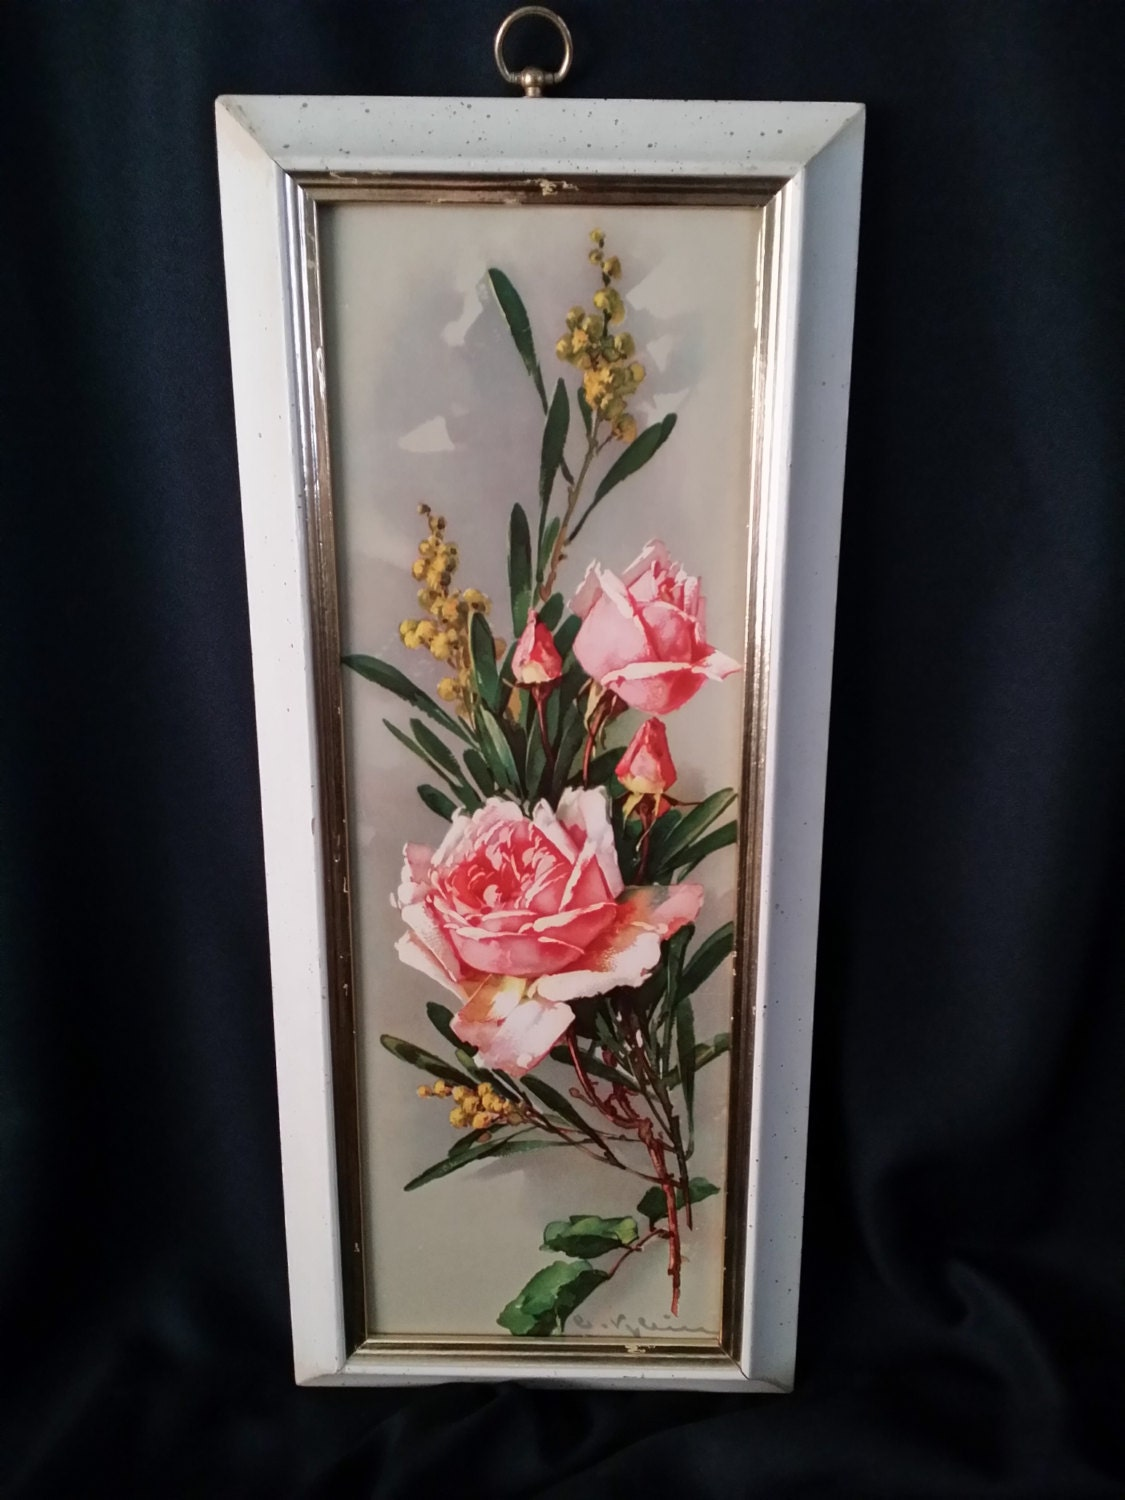 Vintage wall art pink roses hollywood regency cottage chic for Hollywood regency wall decor